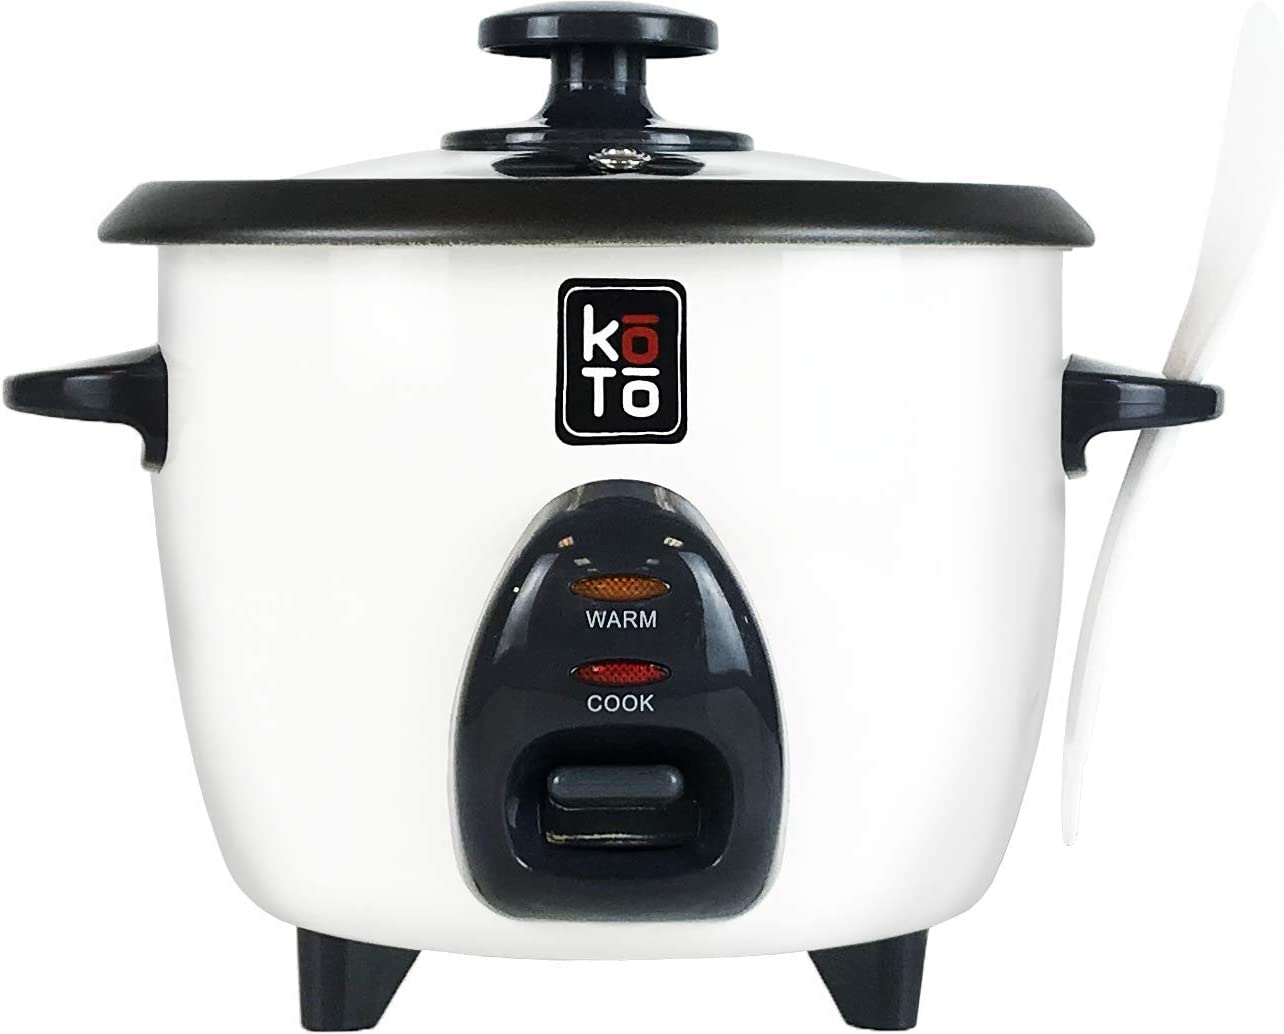 Gorgeous KOTO Electric Rice Cooker with Tempered famous 3 2 lid sizes glass